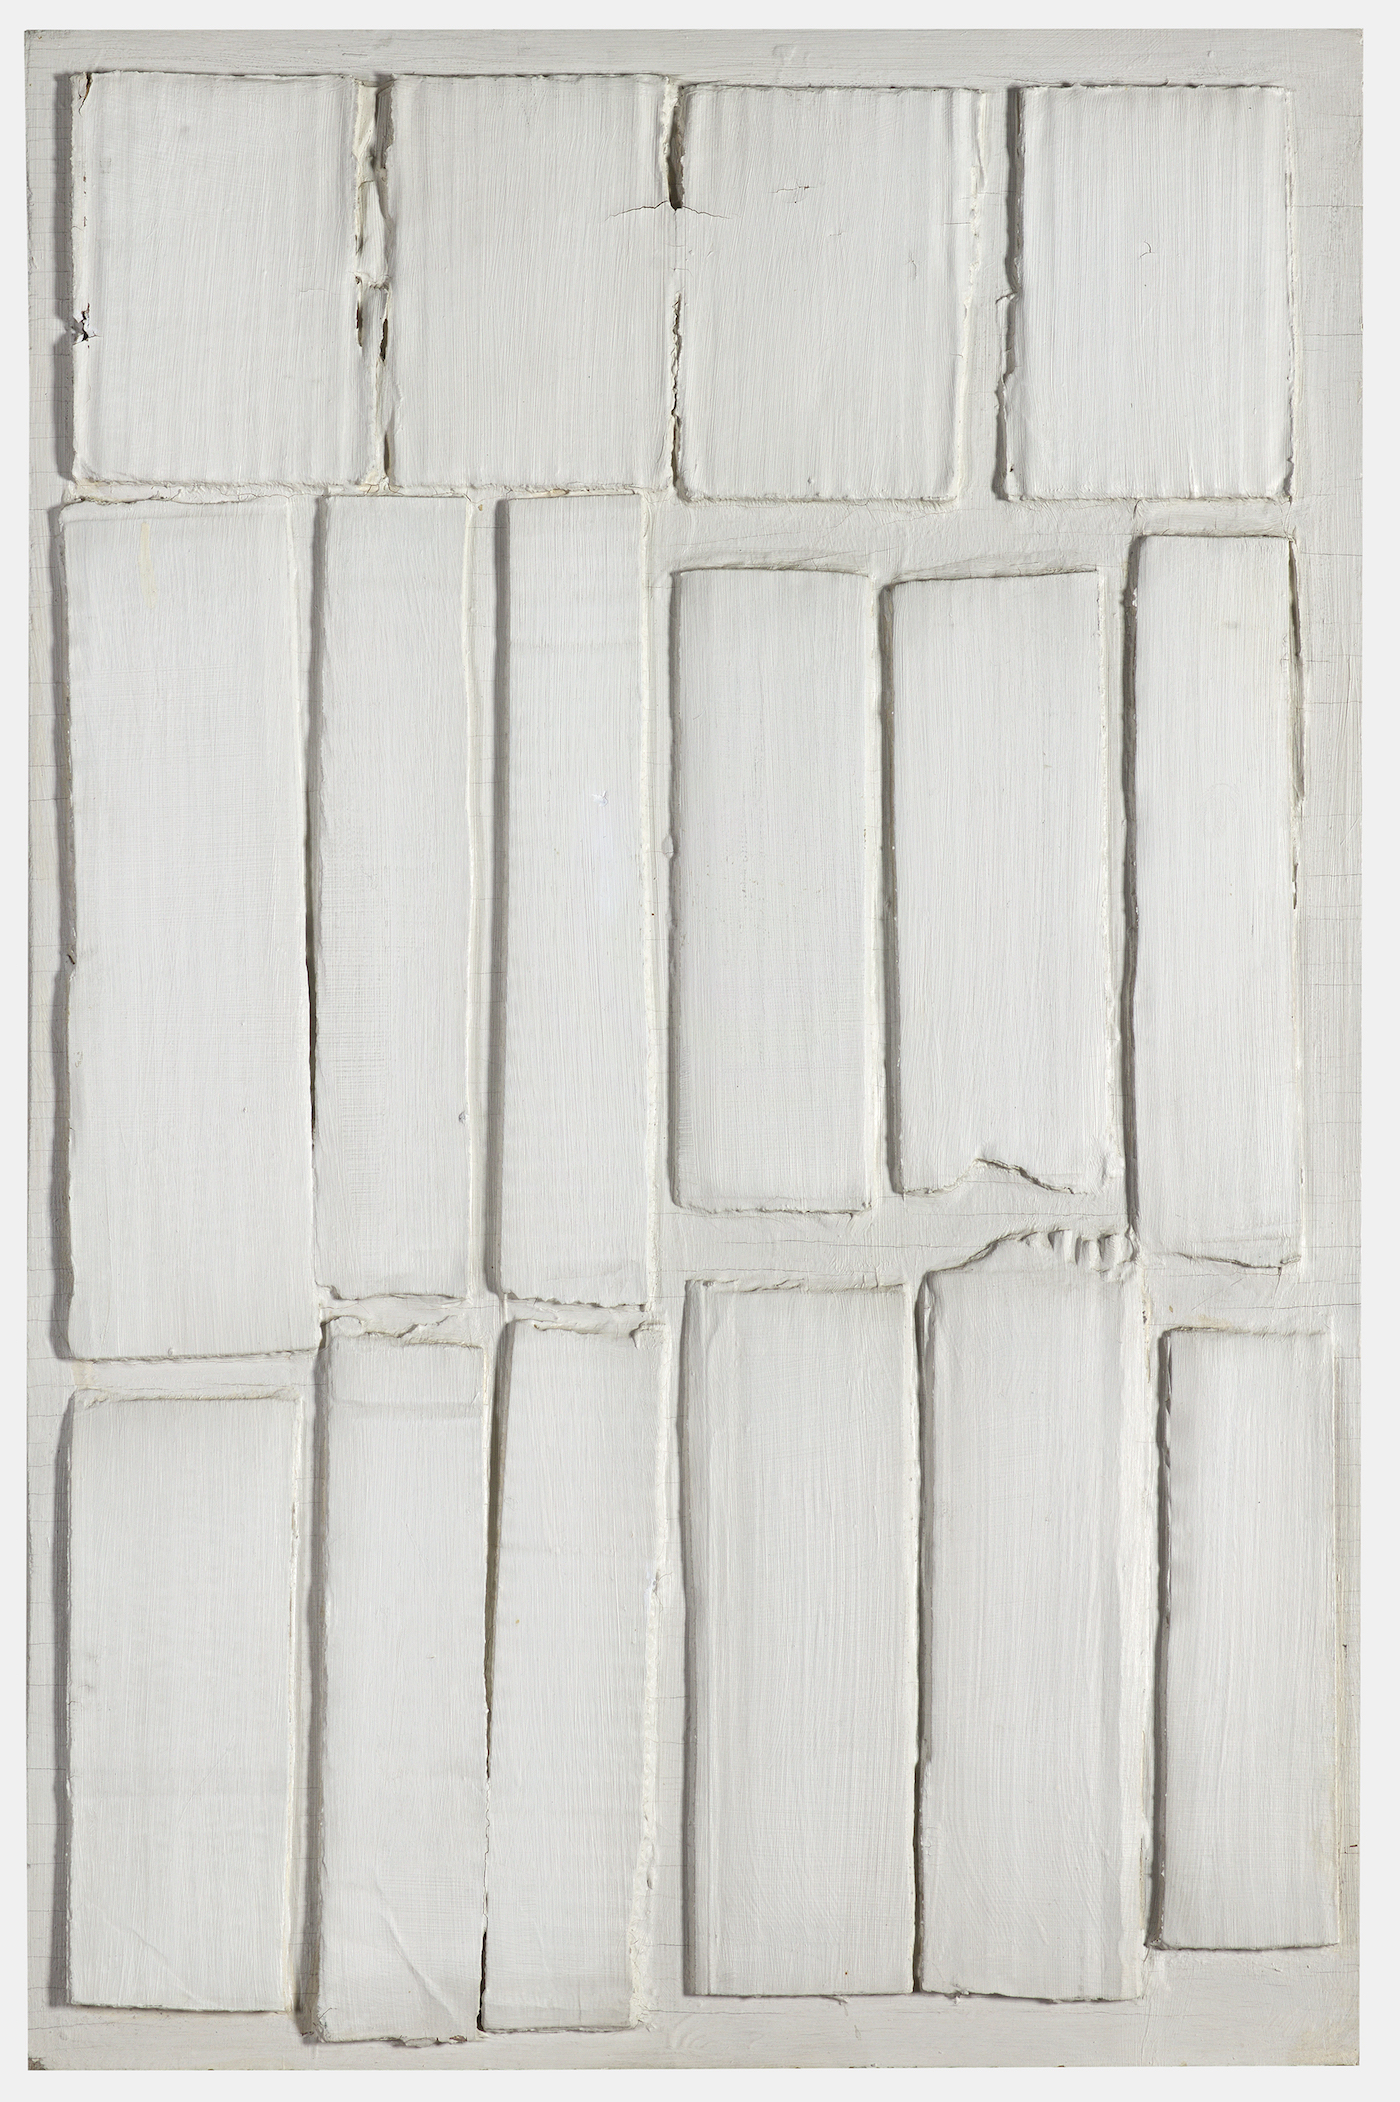 Eleanore Mikus, White Relief, 1962, white oil paint on corrugated cardboard, 24 1/8 X 15 1/2 inches (courtesy of Craig F. Starr Gallery)